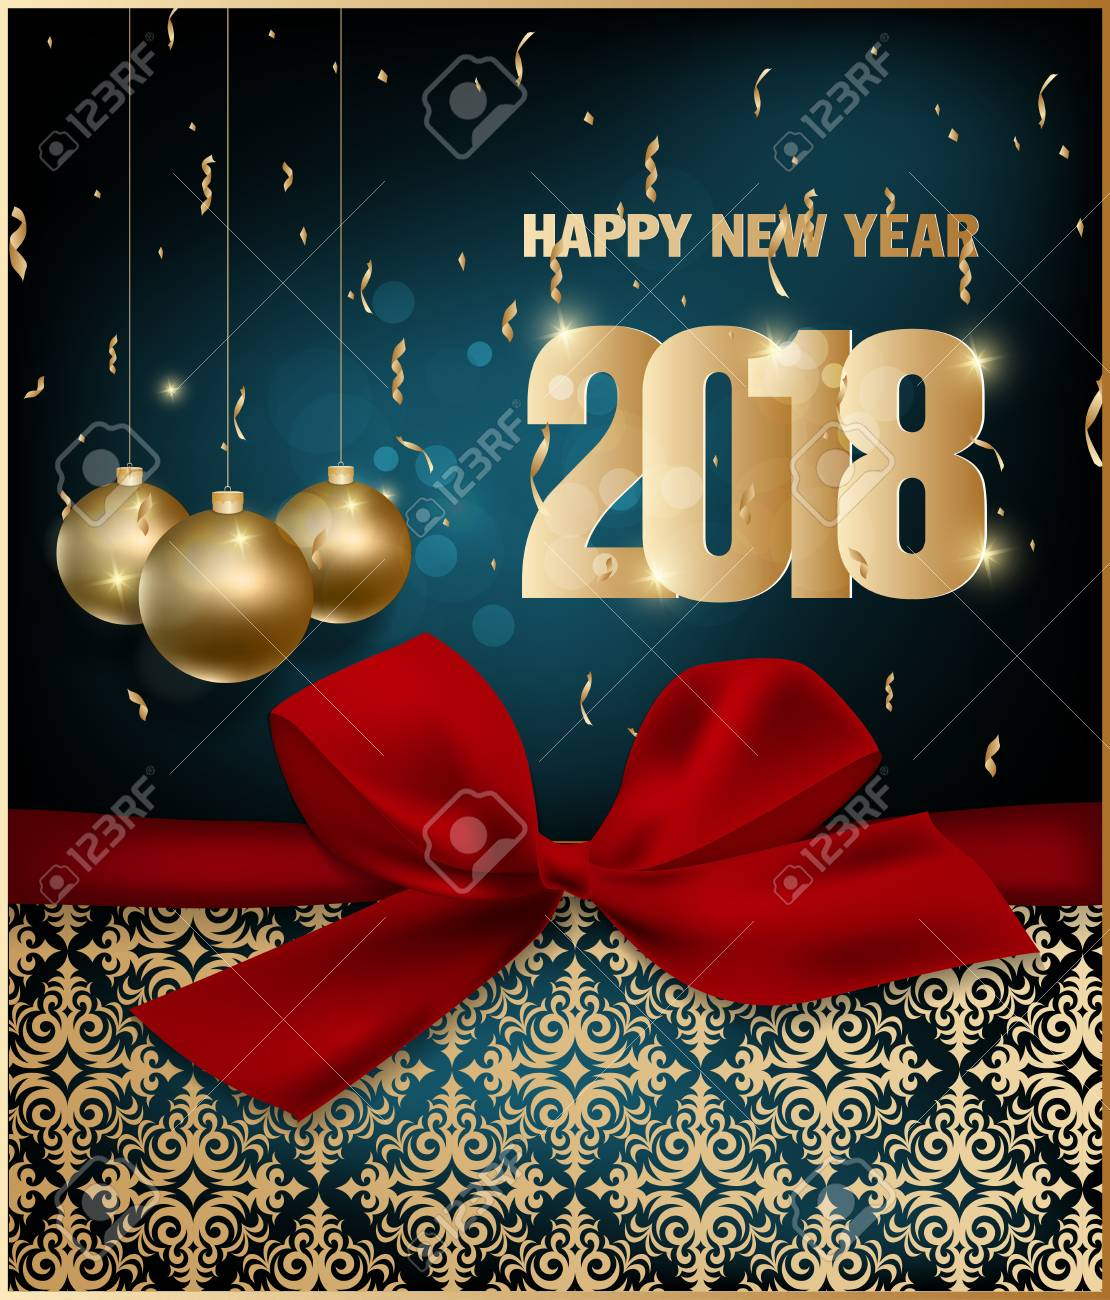 Happy new year 2018 greeting card and merry christmas royalty free happy new year 2018 greeting card and merry christmas stock vector 87833247 m4hsunfo